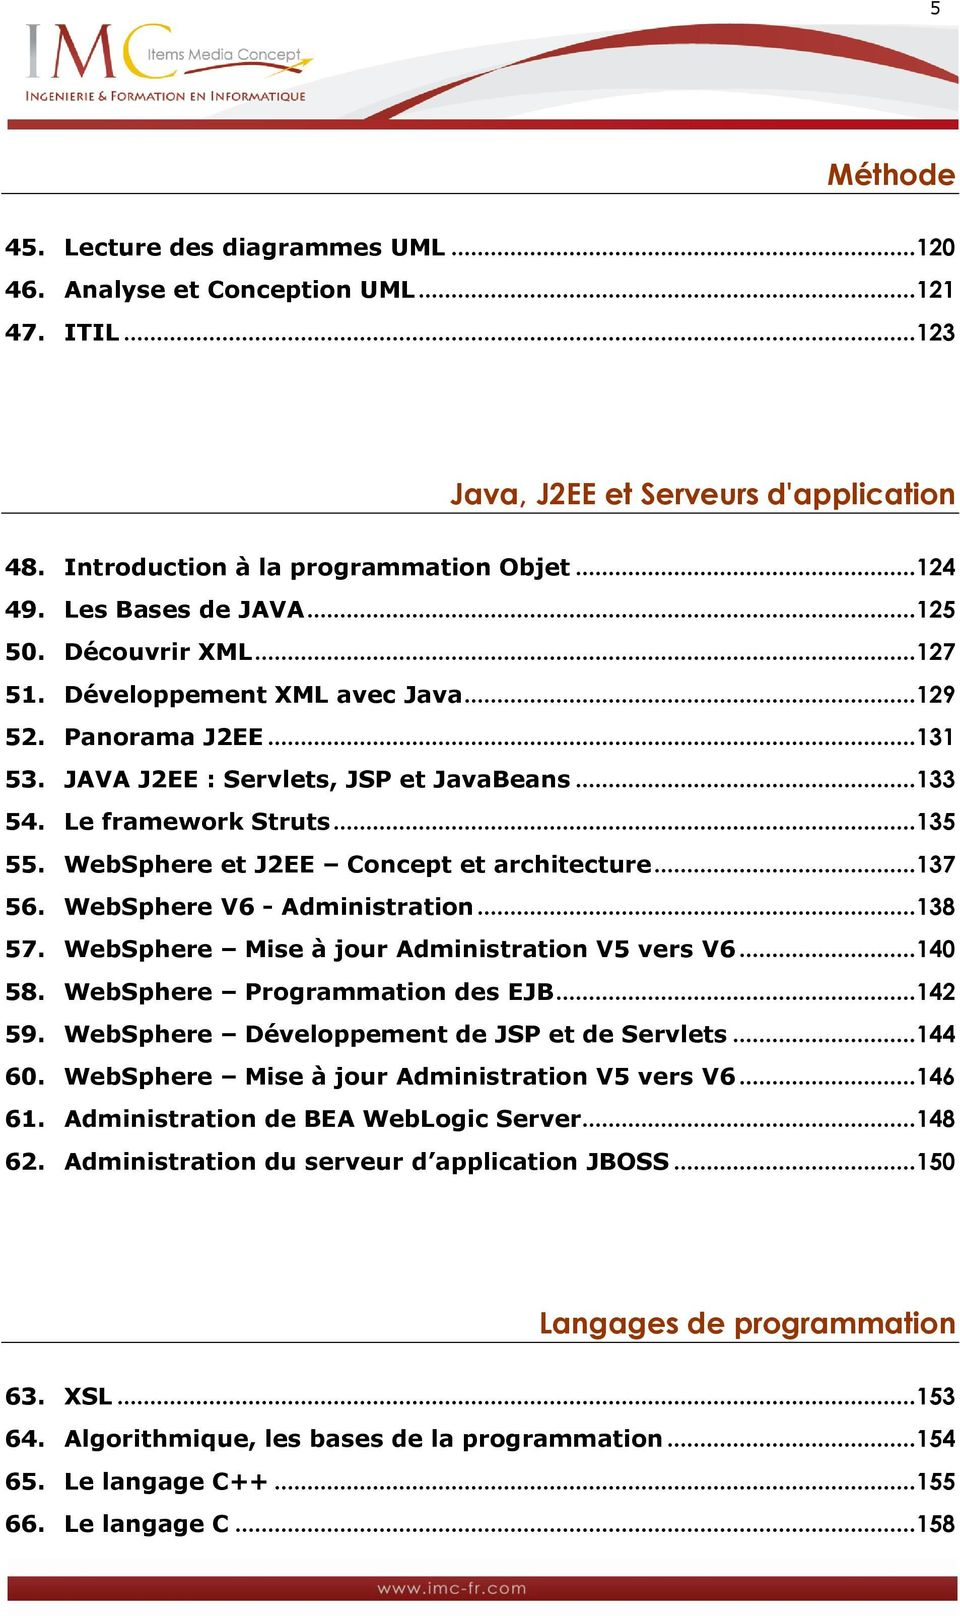 WebSphere et J2EE Concept et architecture...137 56. WebSphere V6 - Administration...138 57. WebSphere Mise à jour Administration V5 vers V6...140 58. WebSphere Programmation des EJB...142 59.